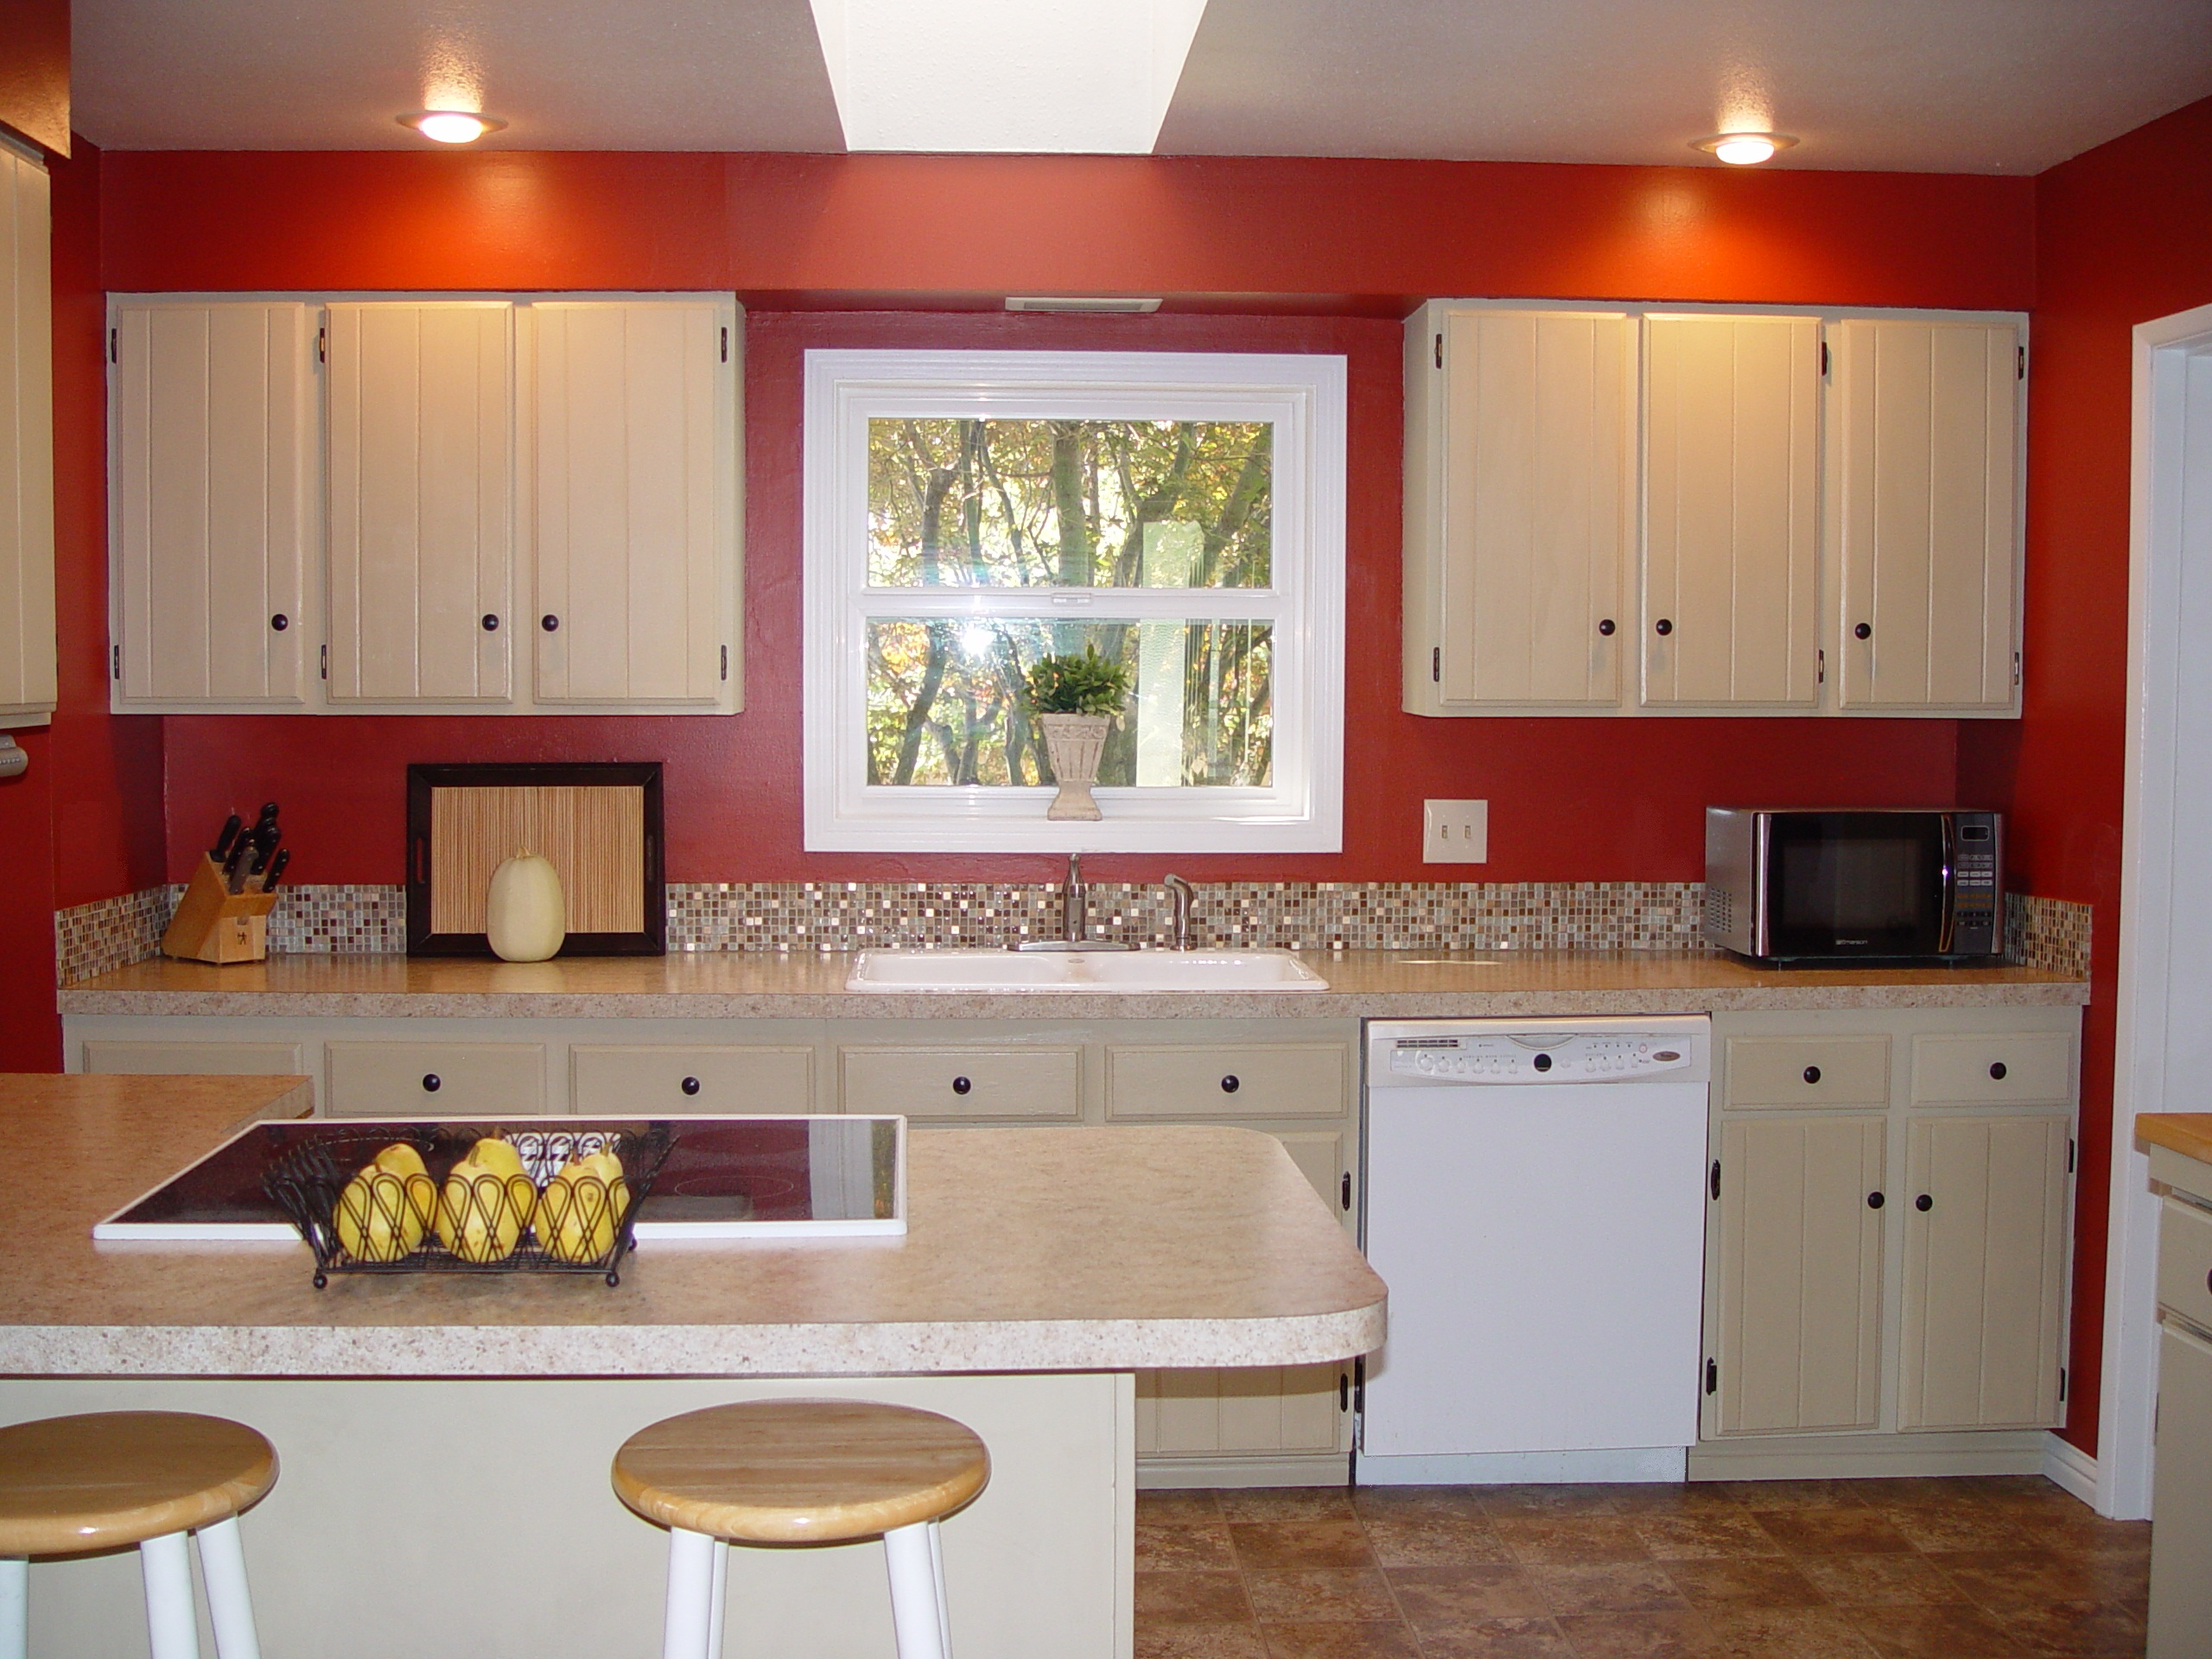 Superior Economical RE Design Made Possible With Salvage Cabinets